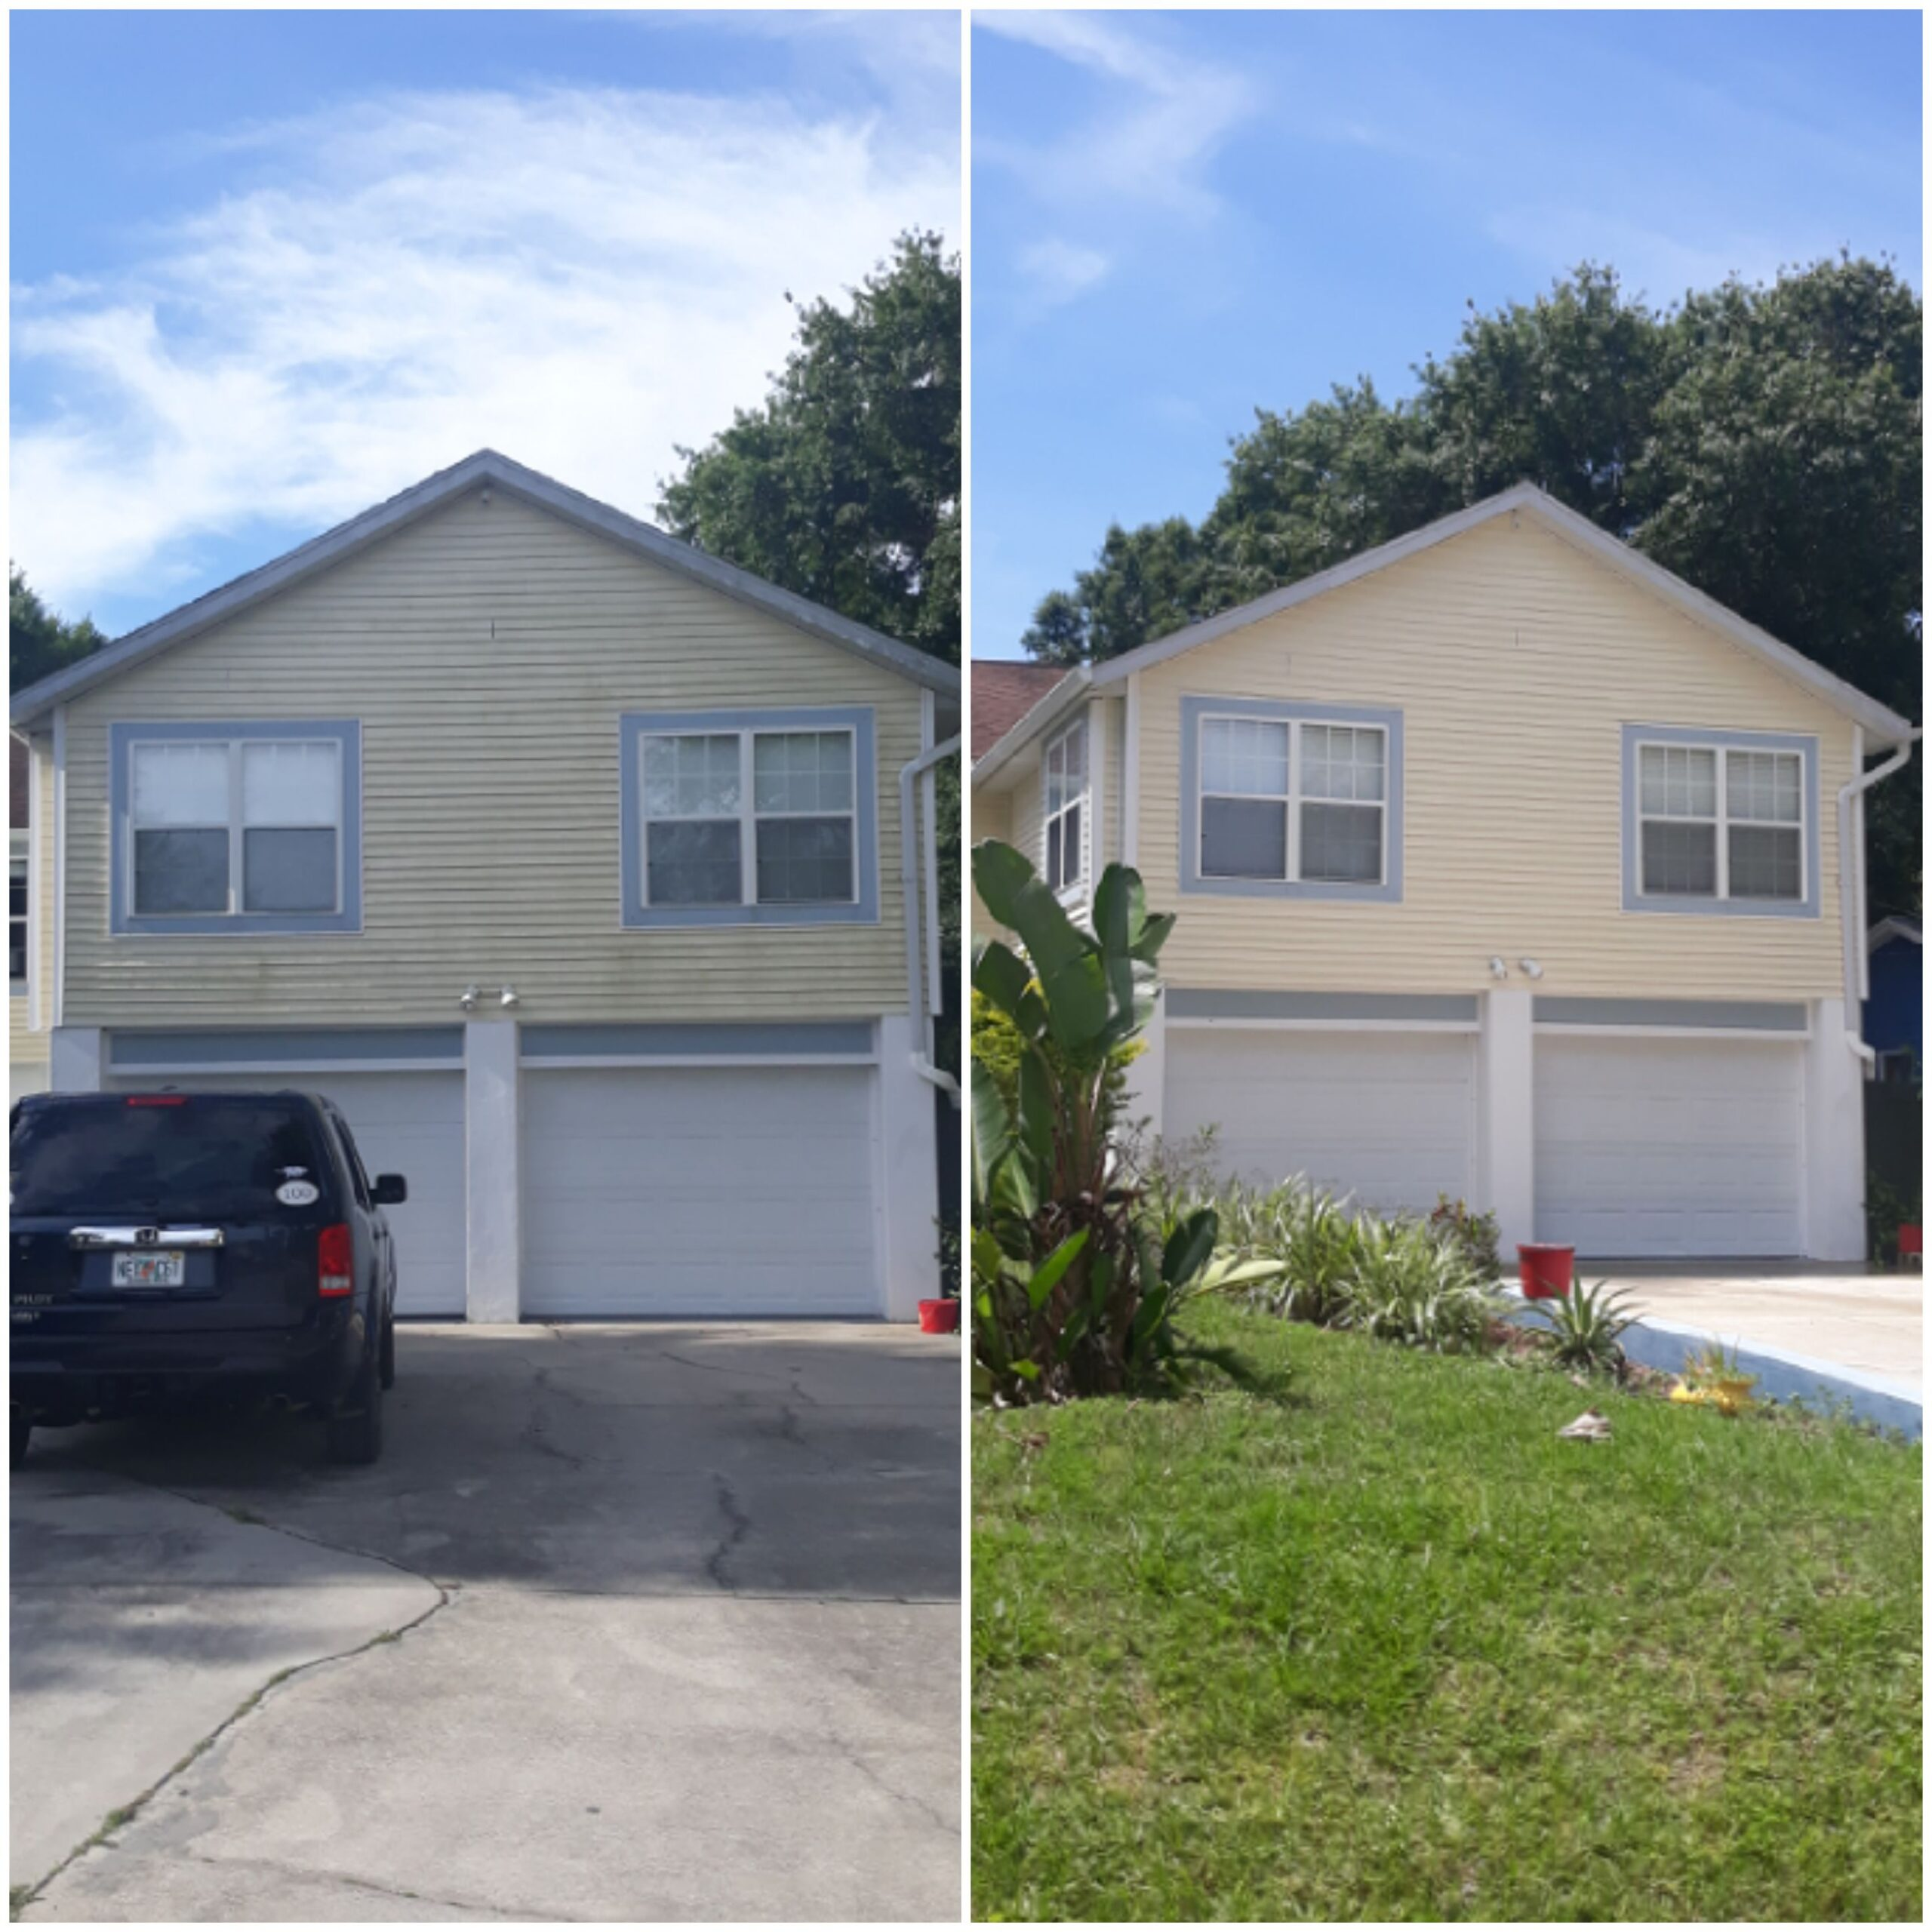 House washing service palm Harbor